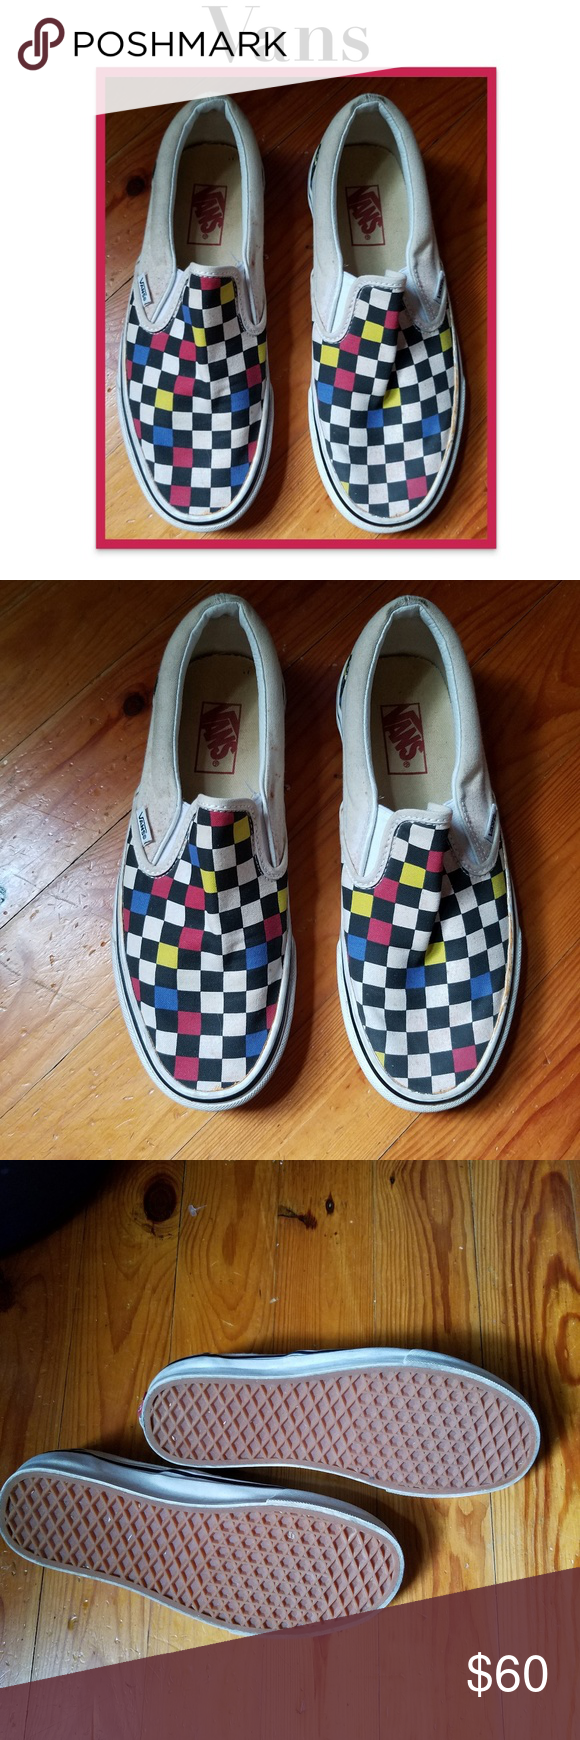 Vans Checkered Mens Slip On Shoes Colors of classic black and white along with red yellow and blue Checkerboard Vans slip on shoes Condition has just slight wear Still in...